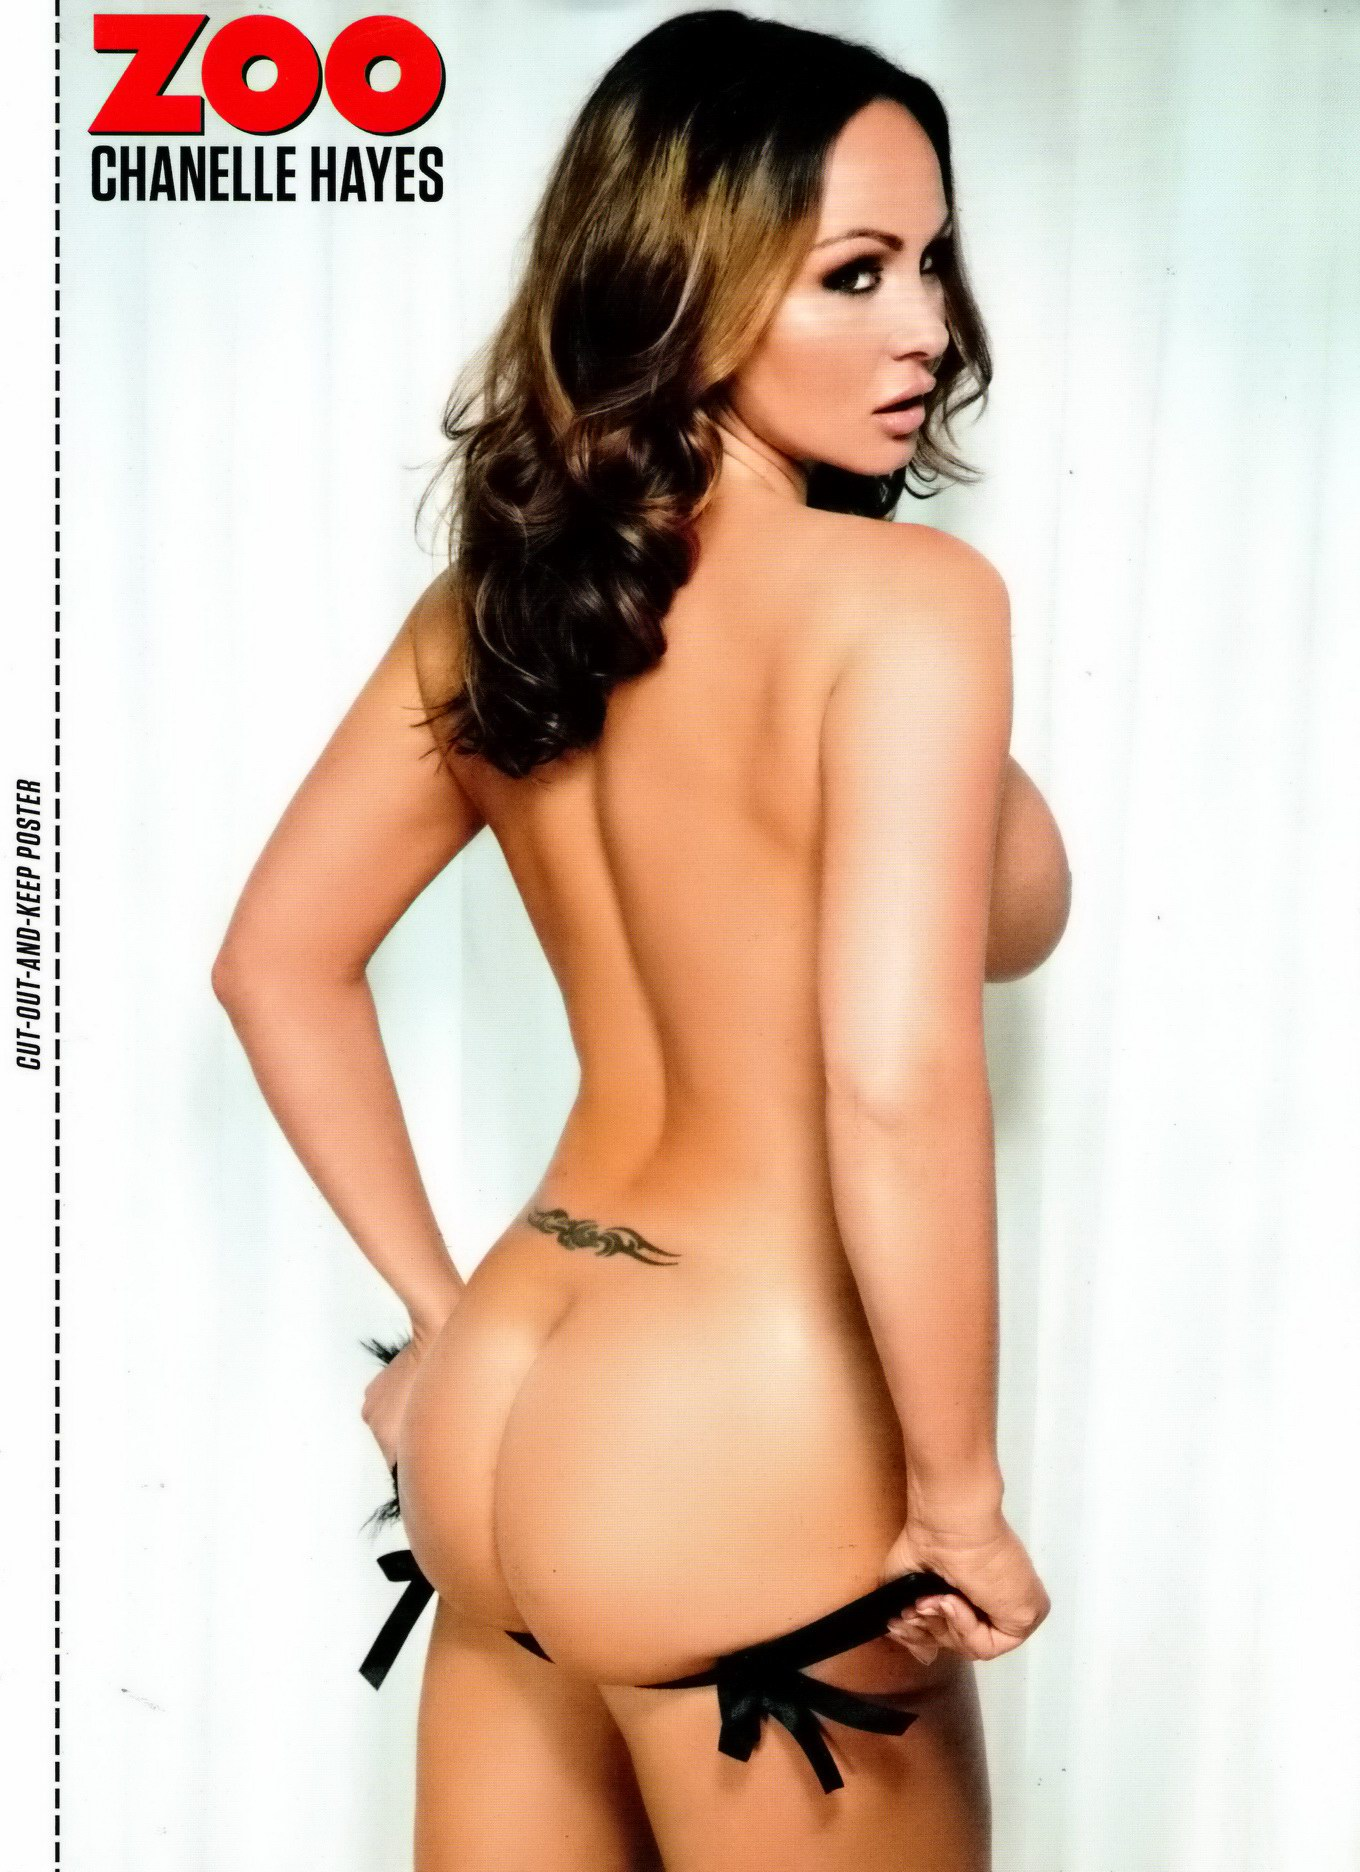 chanelle hayes nude ass